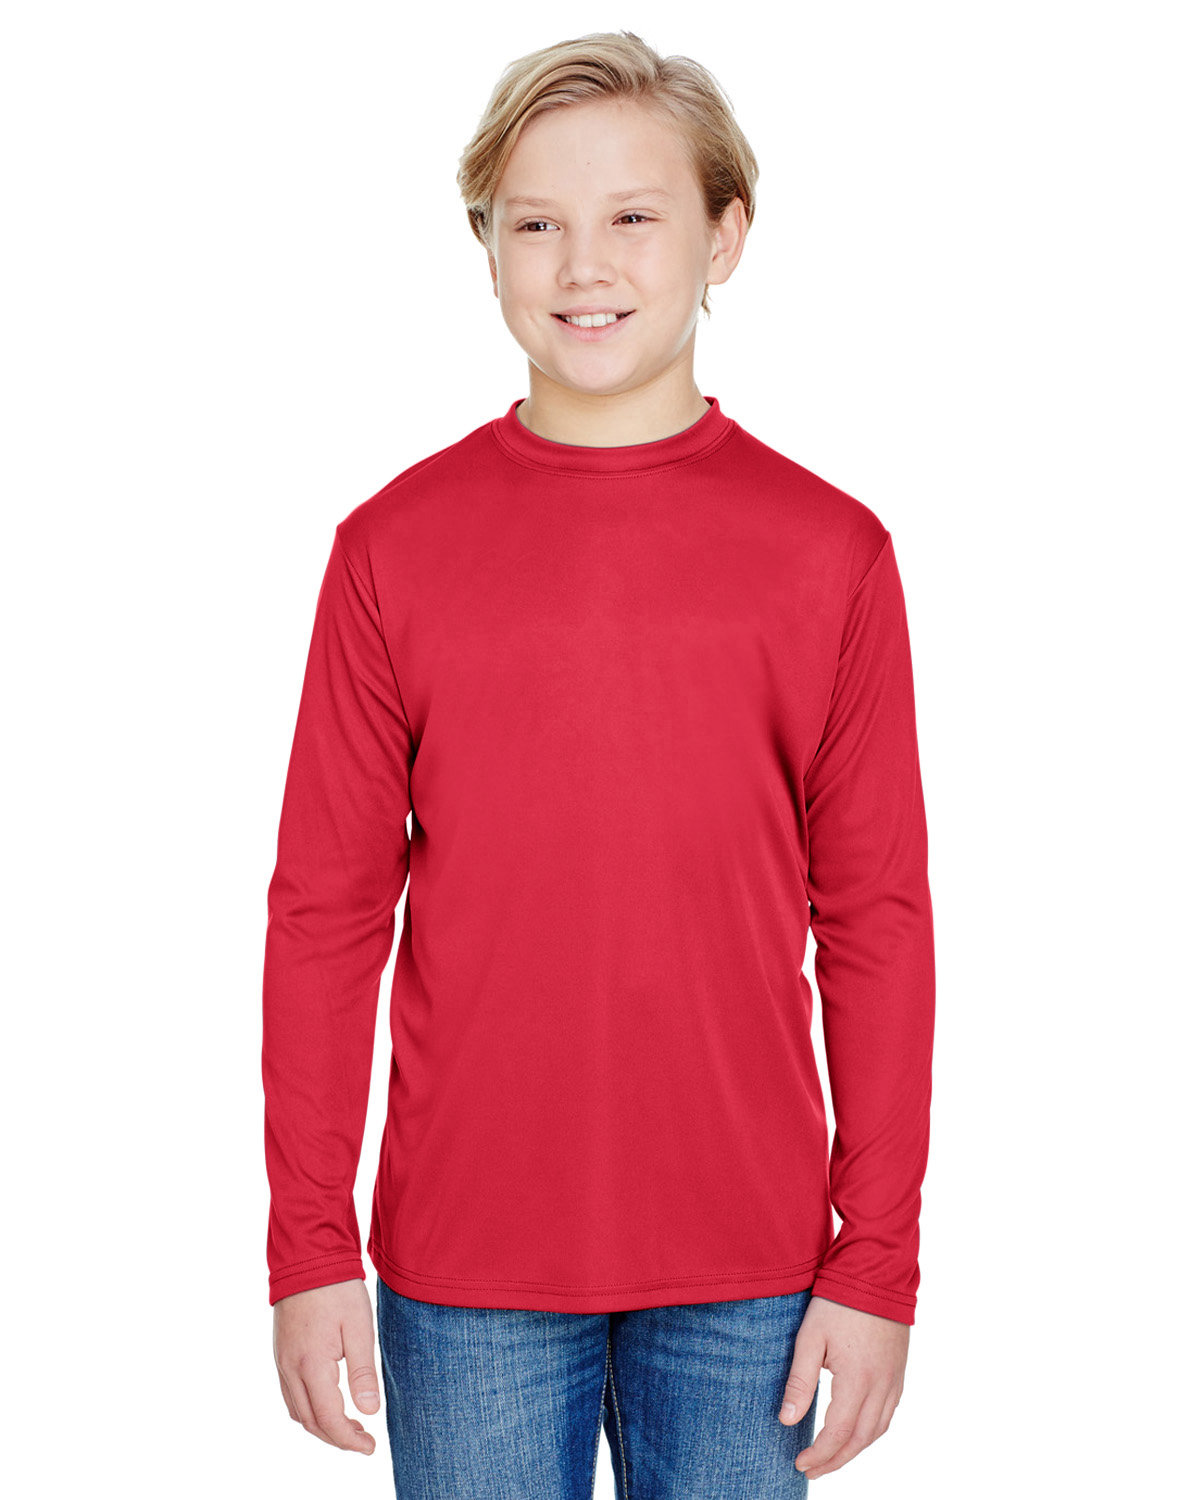 A4 Youth Long Sleeve Cooling Performance Crew Shirt SCARLET